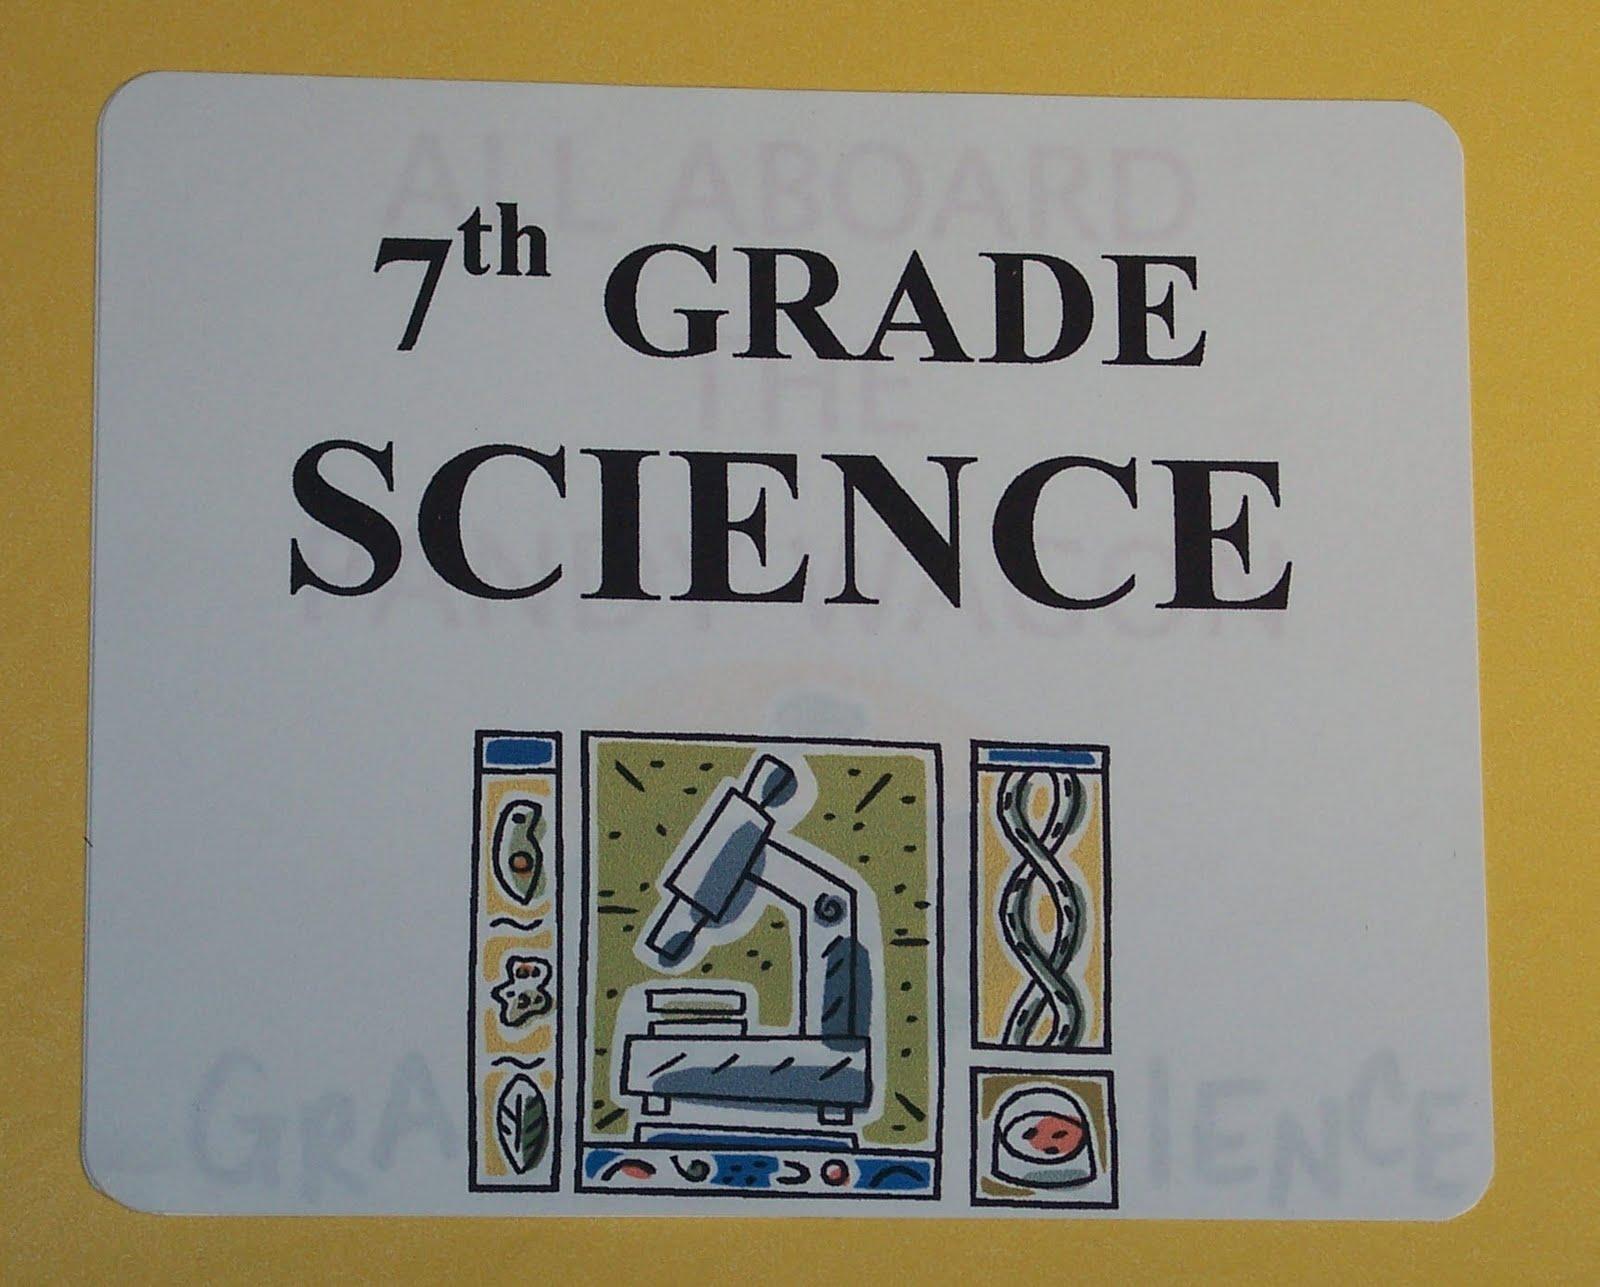 science projects for 7th graders We also have 6th grade middle school science projects, 7th grade science fair projects, and 8th grade middle school science projects pages with specific information.